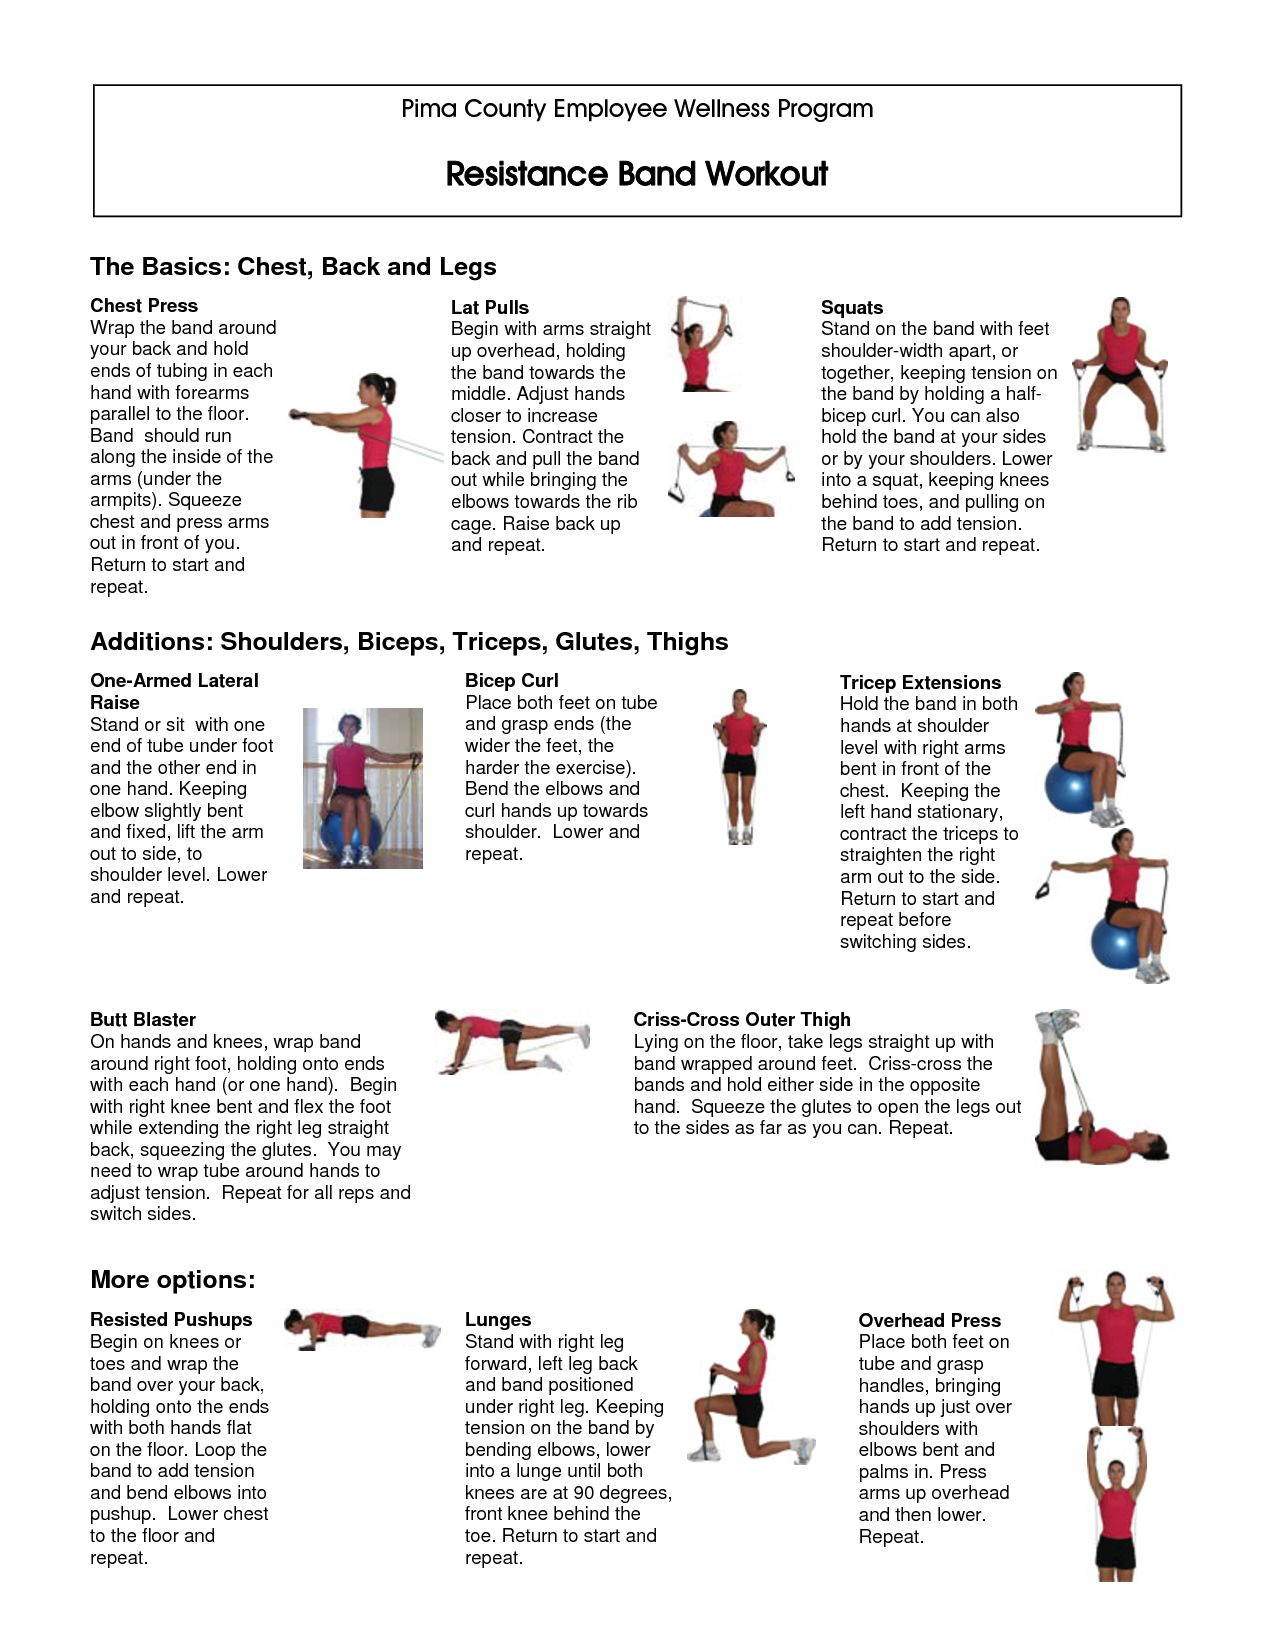 It is a picture of Versatile Printable Resistance Band Exercises